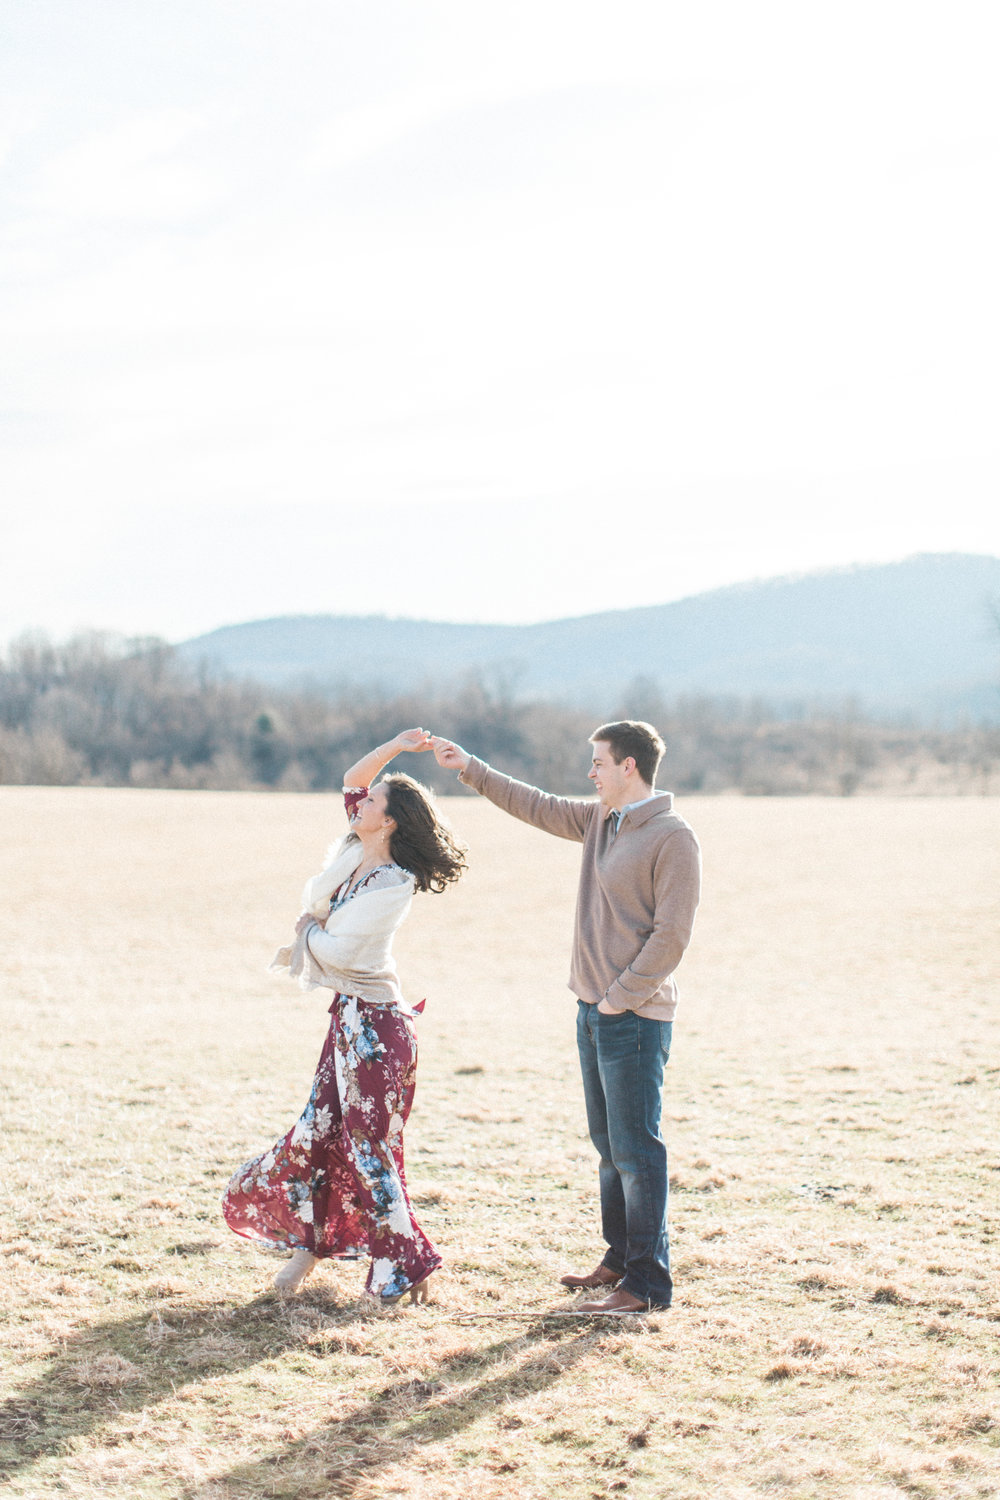 Abigail_Jill_Photography_Maryland_Engagement_Farm_Emily_Justin243.jpg